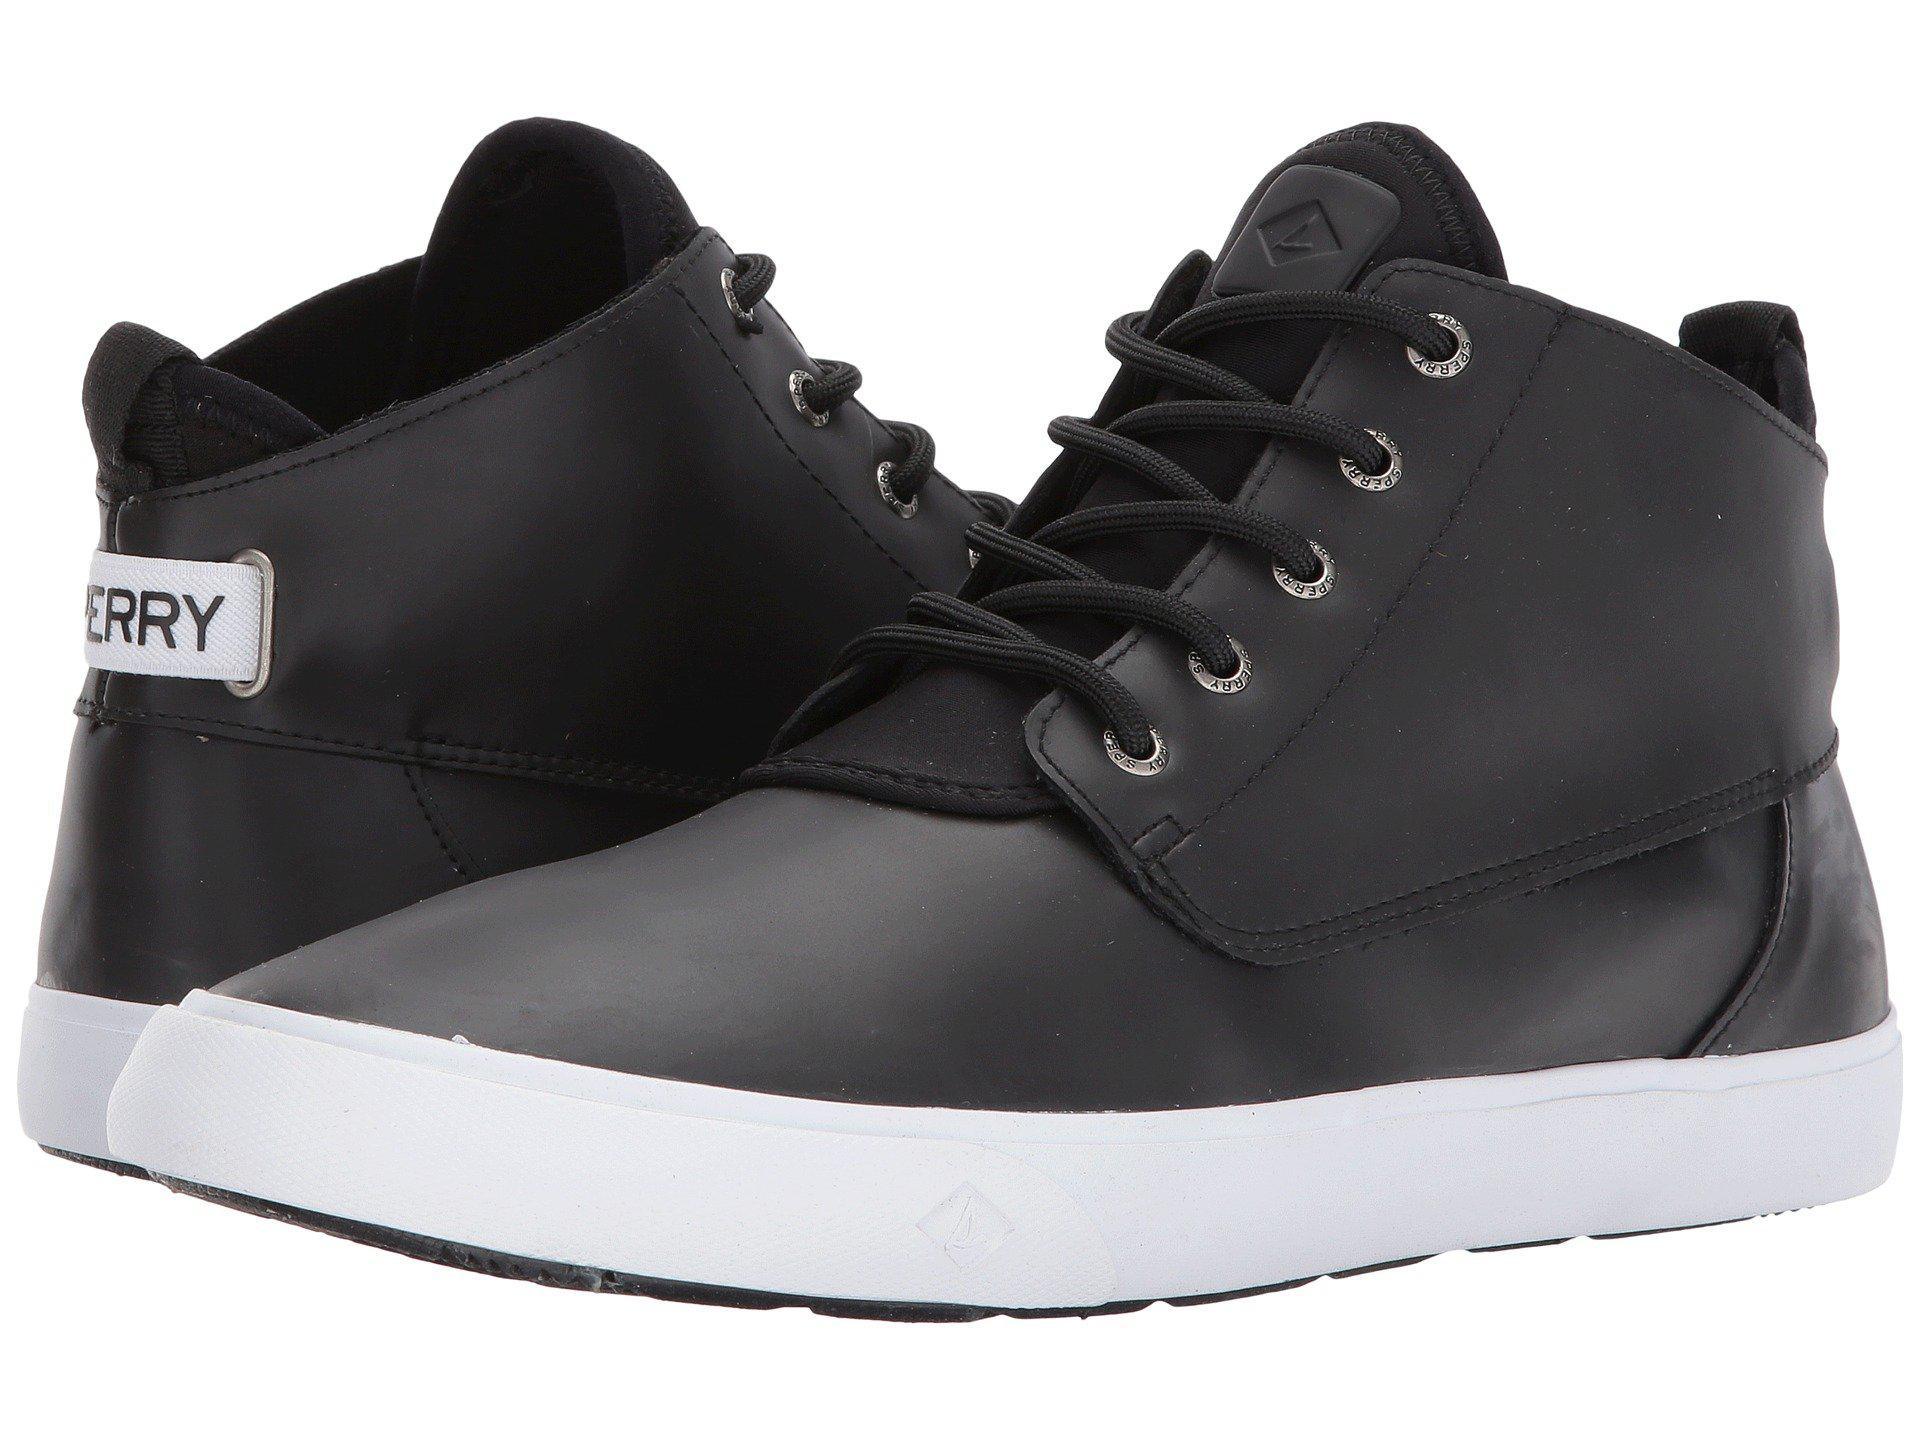 Sperry Top-Sider Cutwater Chukka Rubber